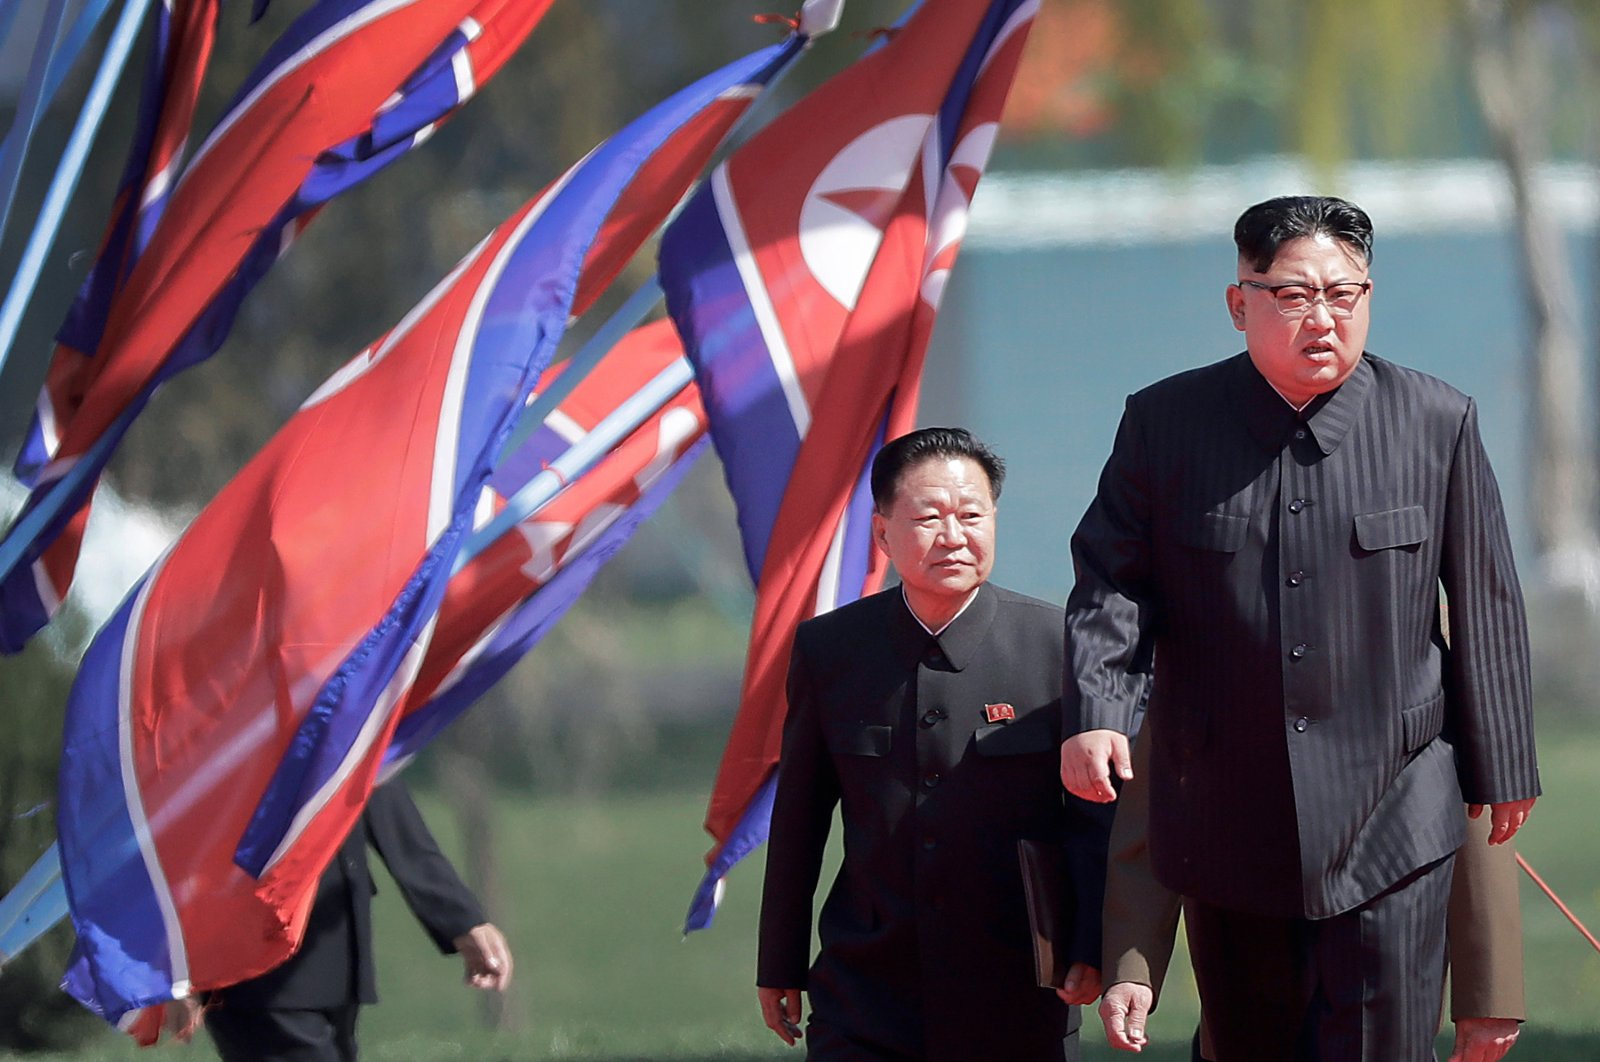 In this April 13, 2017, file photo, North Korean leader Kim Jong Un, right, and Choe Ryong Hae, vice-chairman of the central committee of the Workers' Party, arrive for the official opening of the Ryomyong residential area, in Pyongyang, North Korea. (AP Photo)